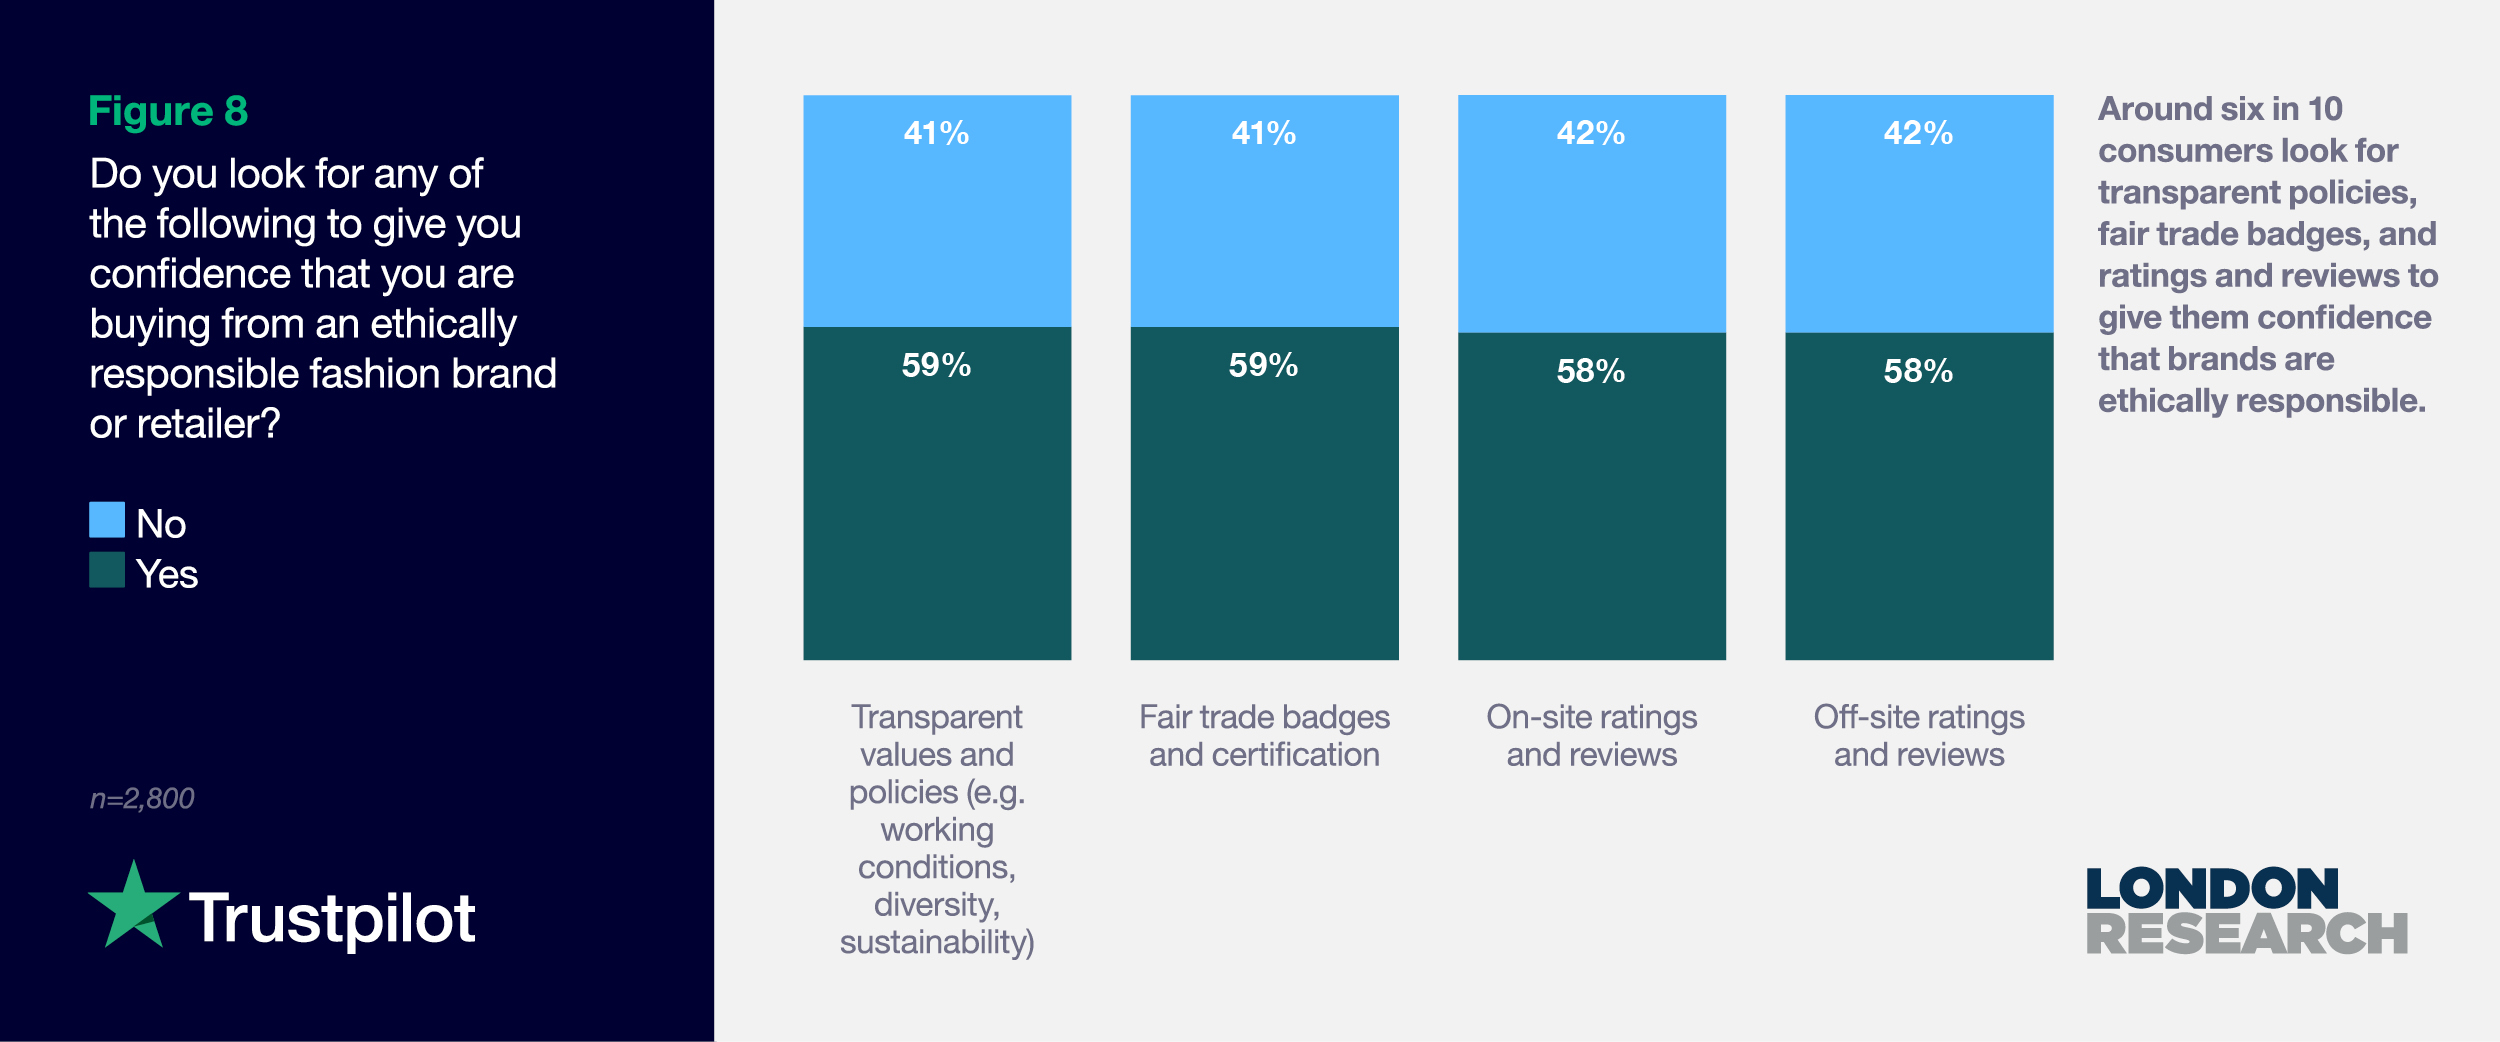 Figure 8: Do you look for any of the following to give you confidence that you are buying from an ethically responsible fashion brand or retailer?